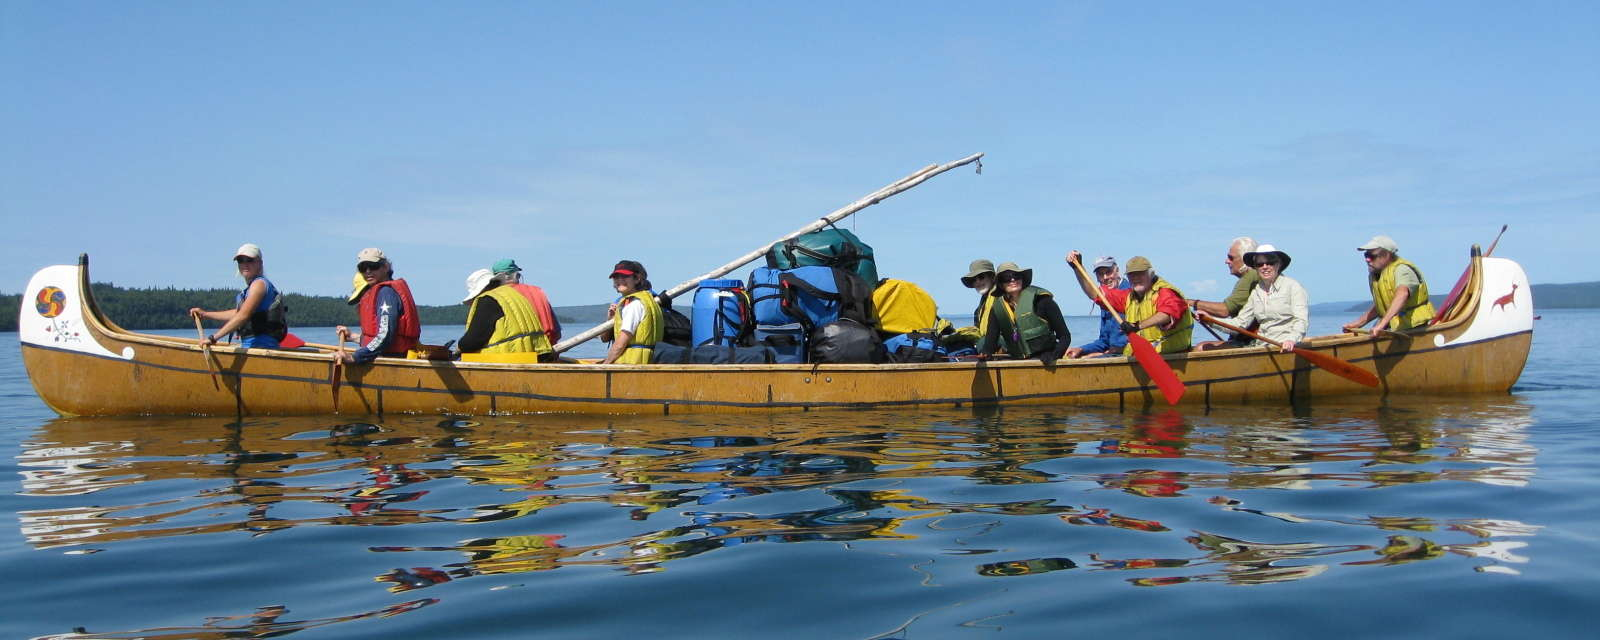 Voyageur Canoe Trip - Group of Seven Landscapes